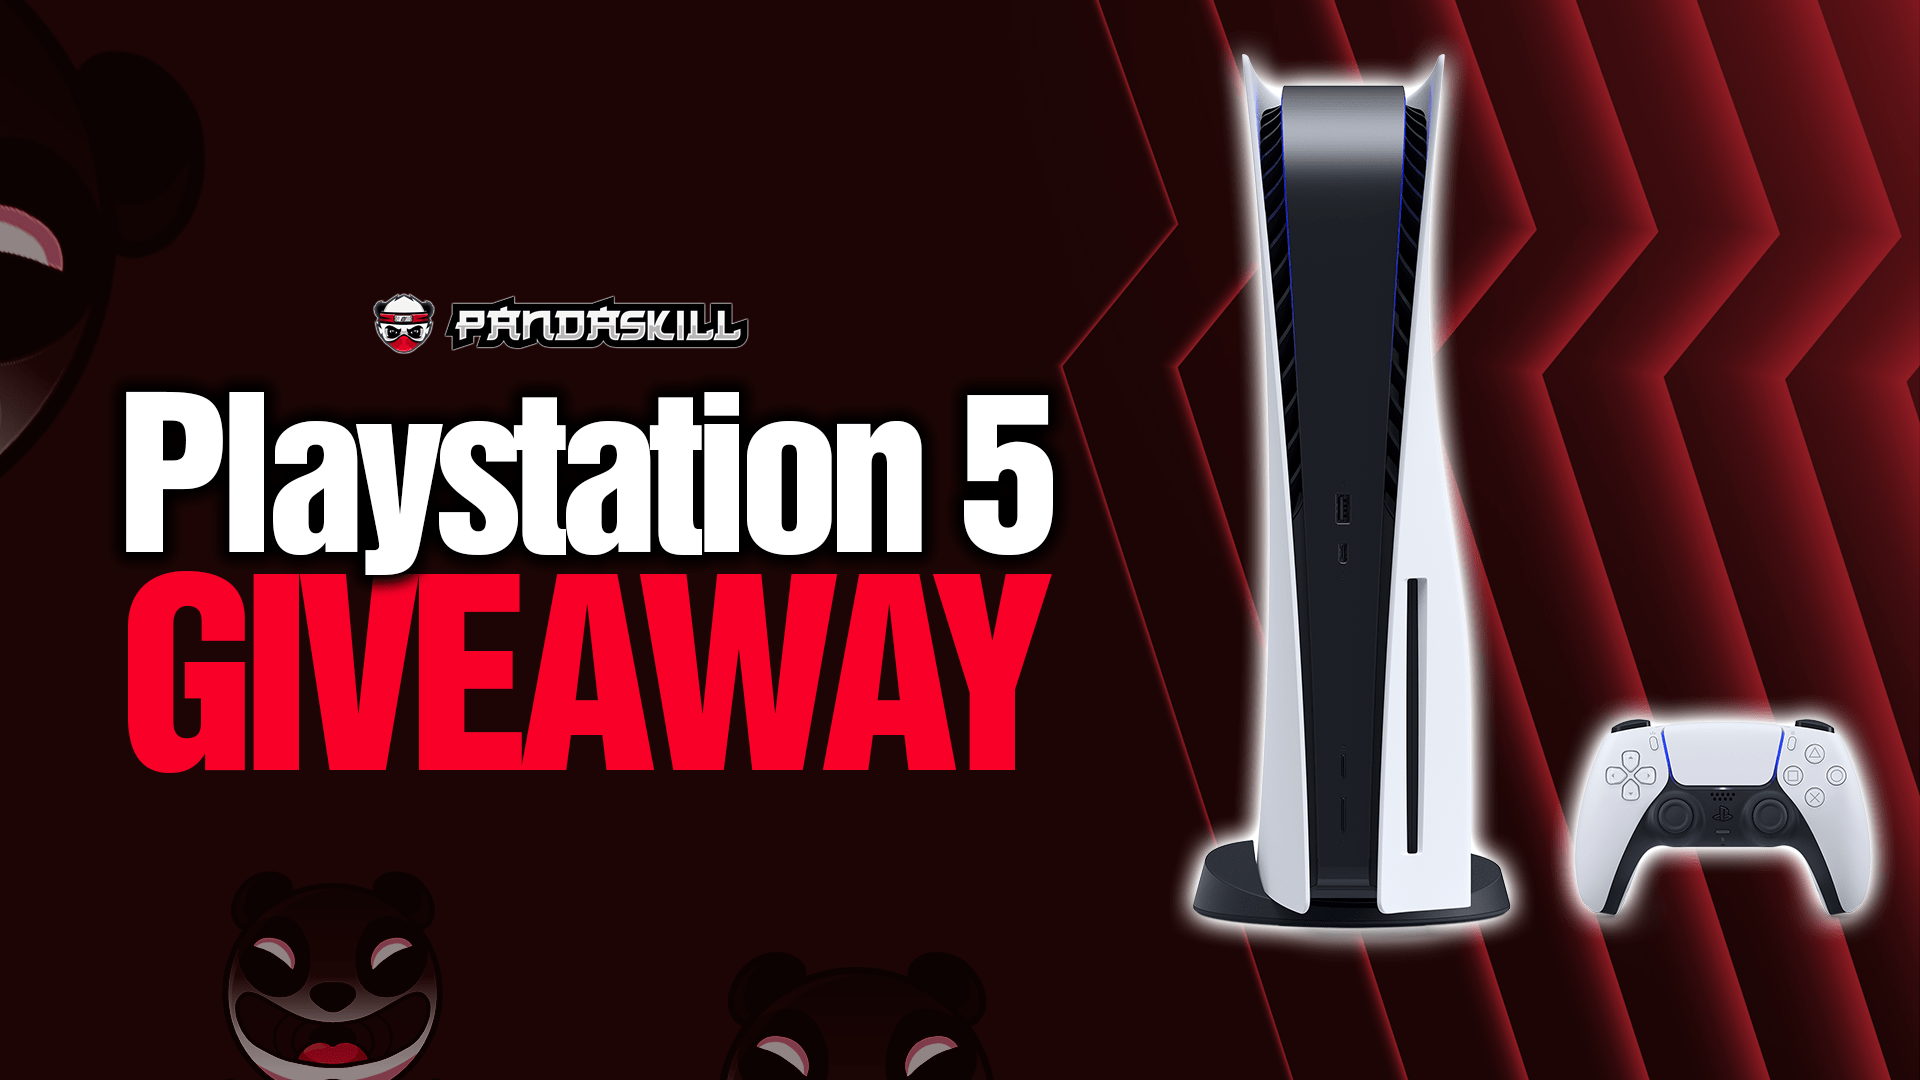 Playstation 5 Disc Edition by Pandaskill Giveaway Image